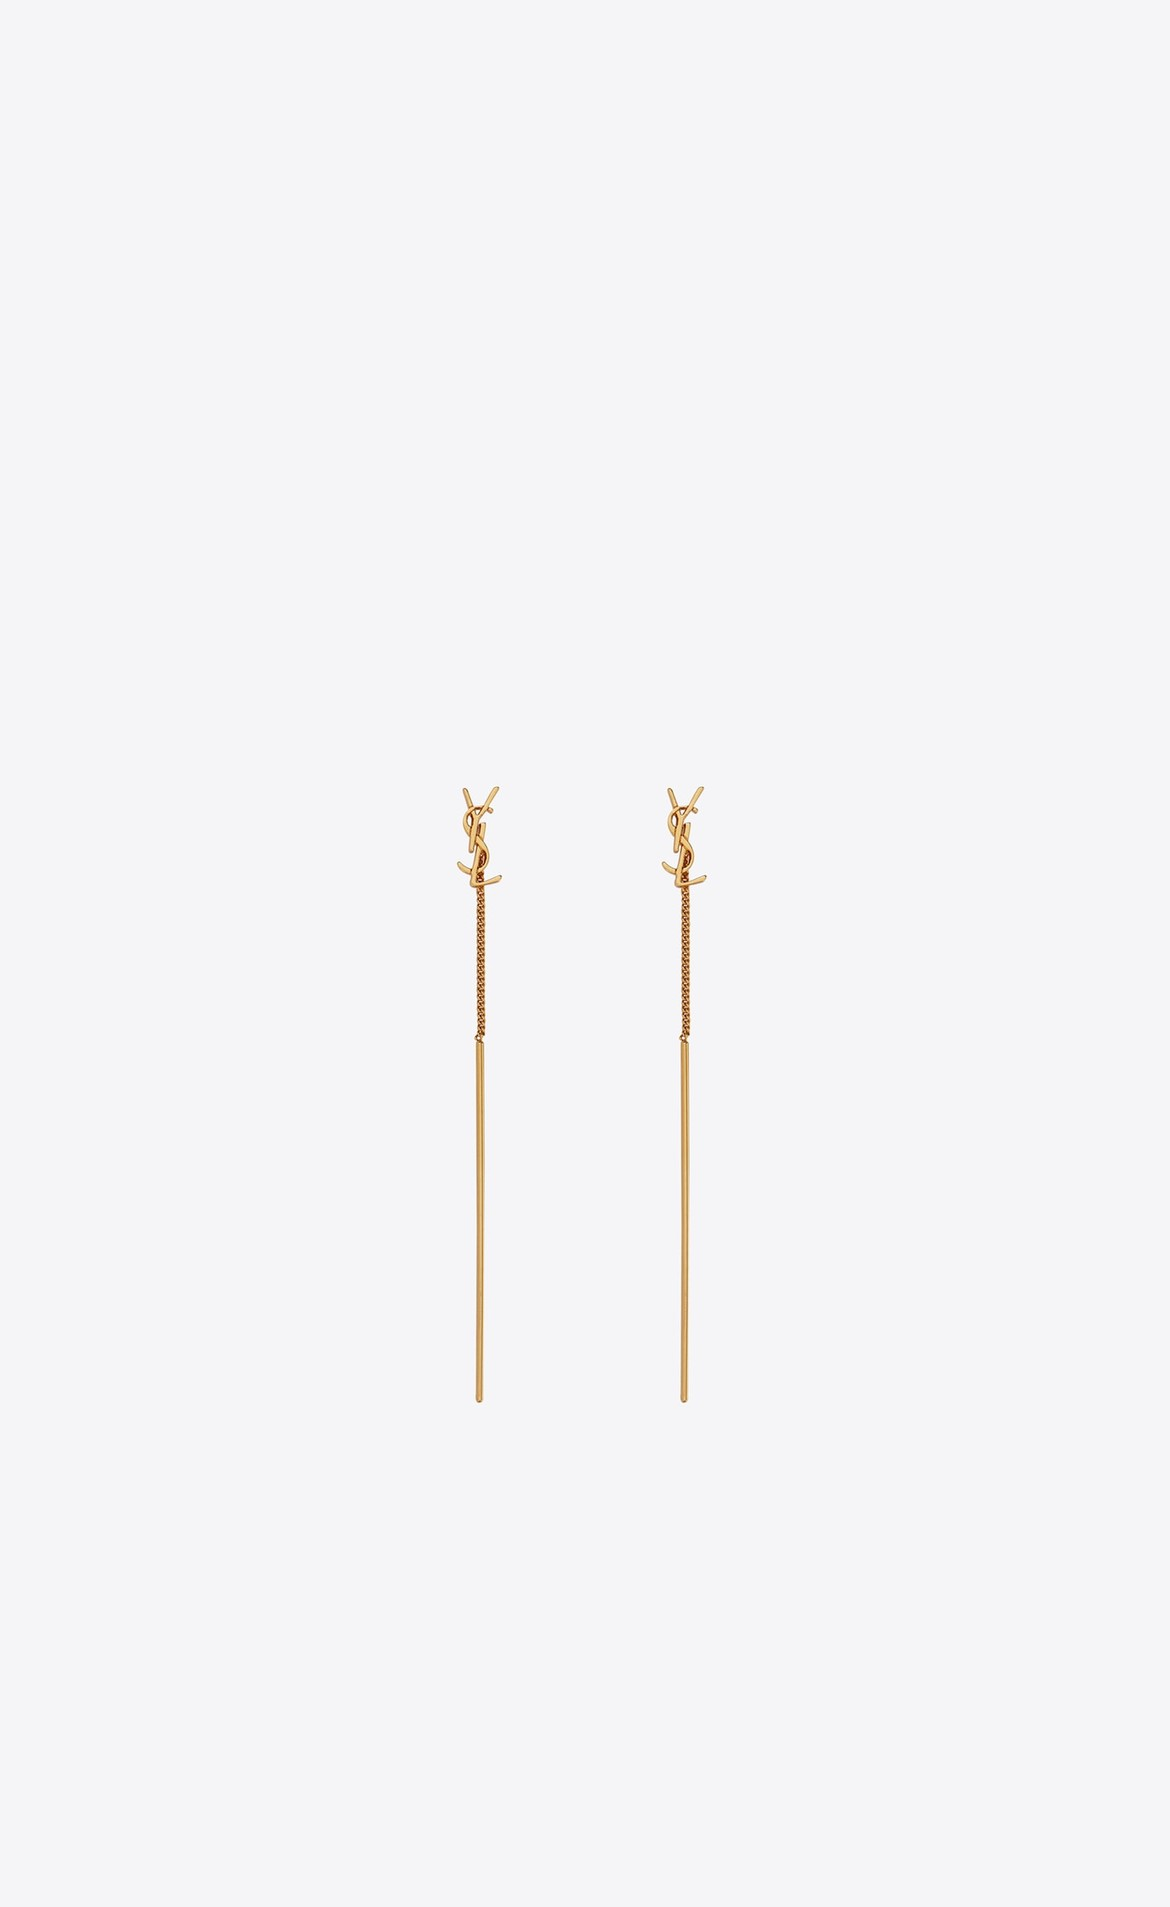 Opyum YSL Threader Earrings in Metal HK$2,750